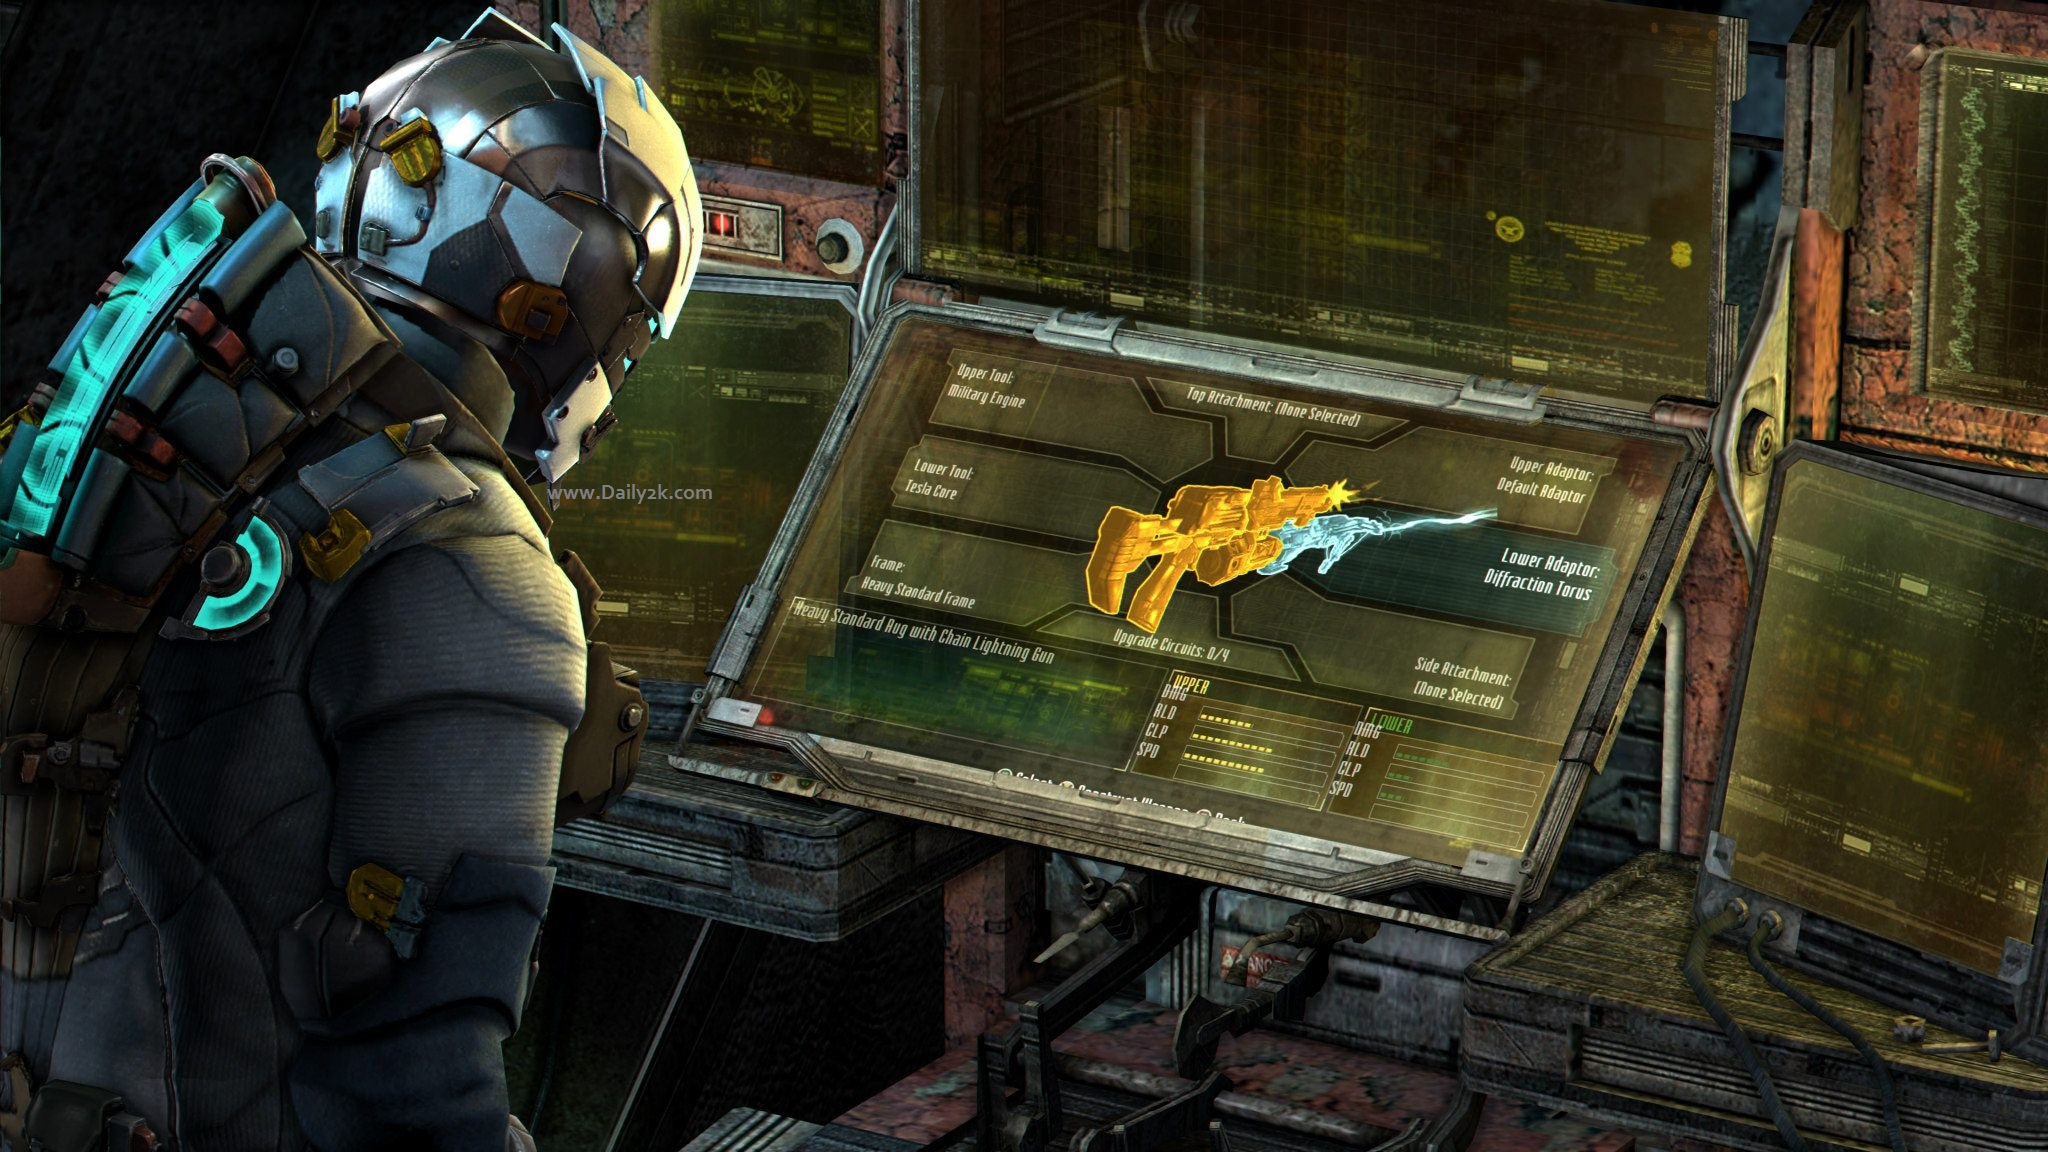 Dead Space 3 Free Download Full PC Version 2016 Here -Daily2k